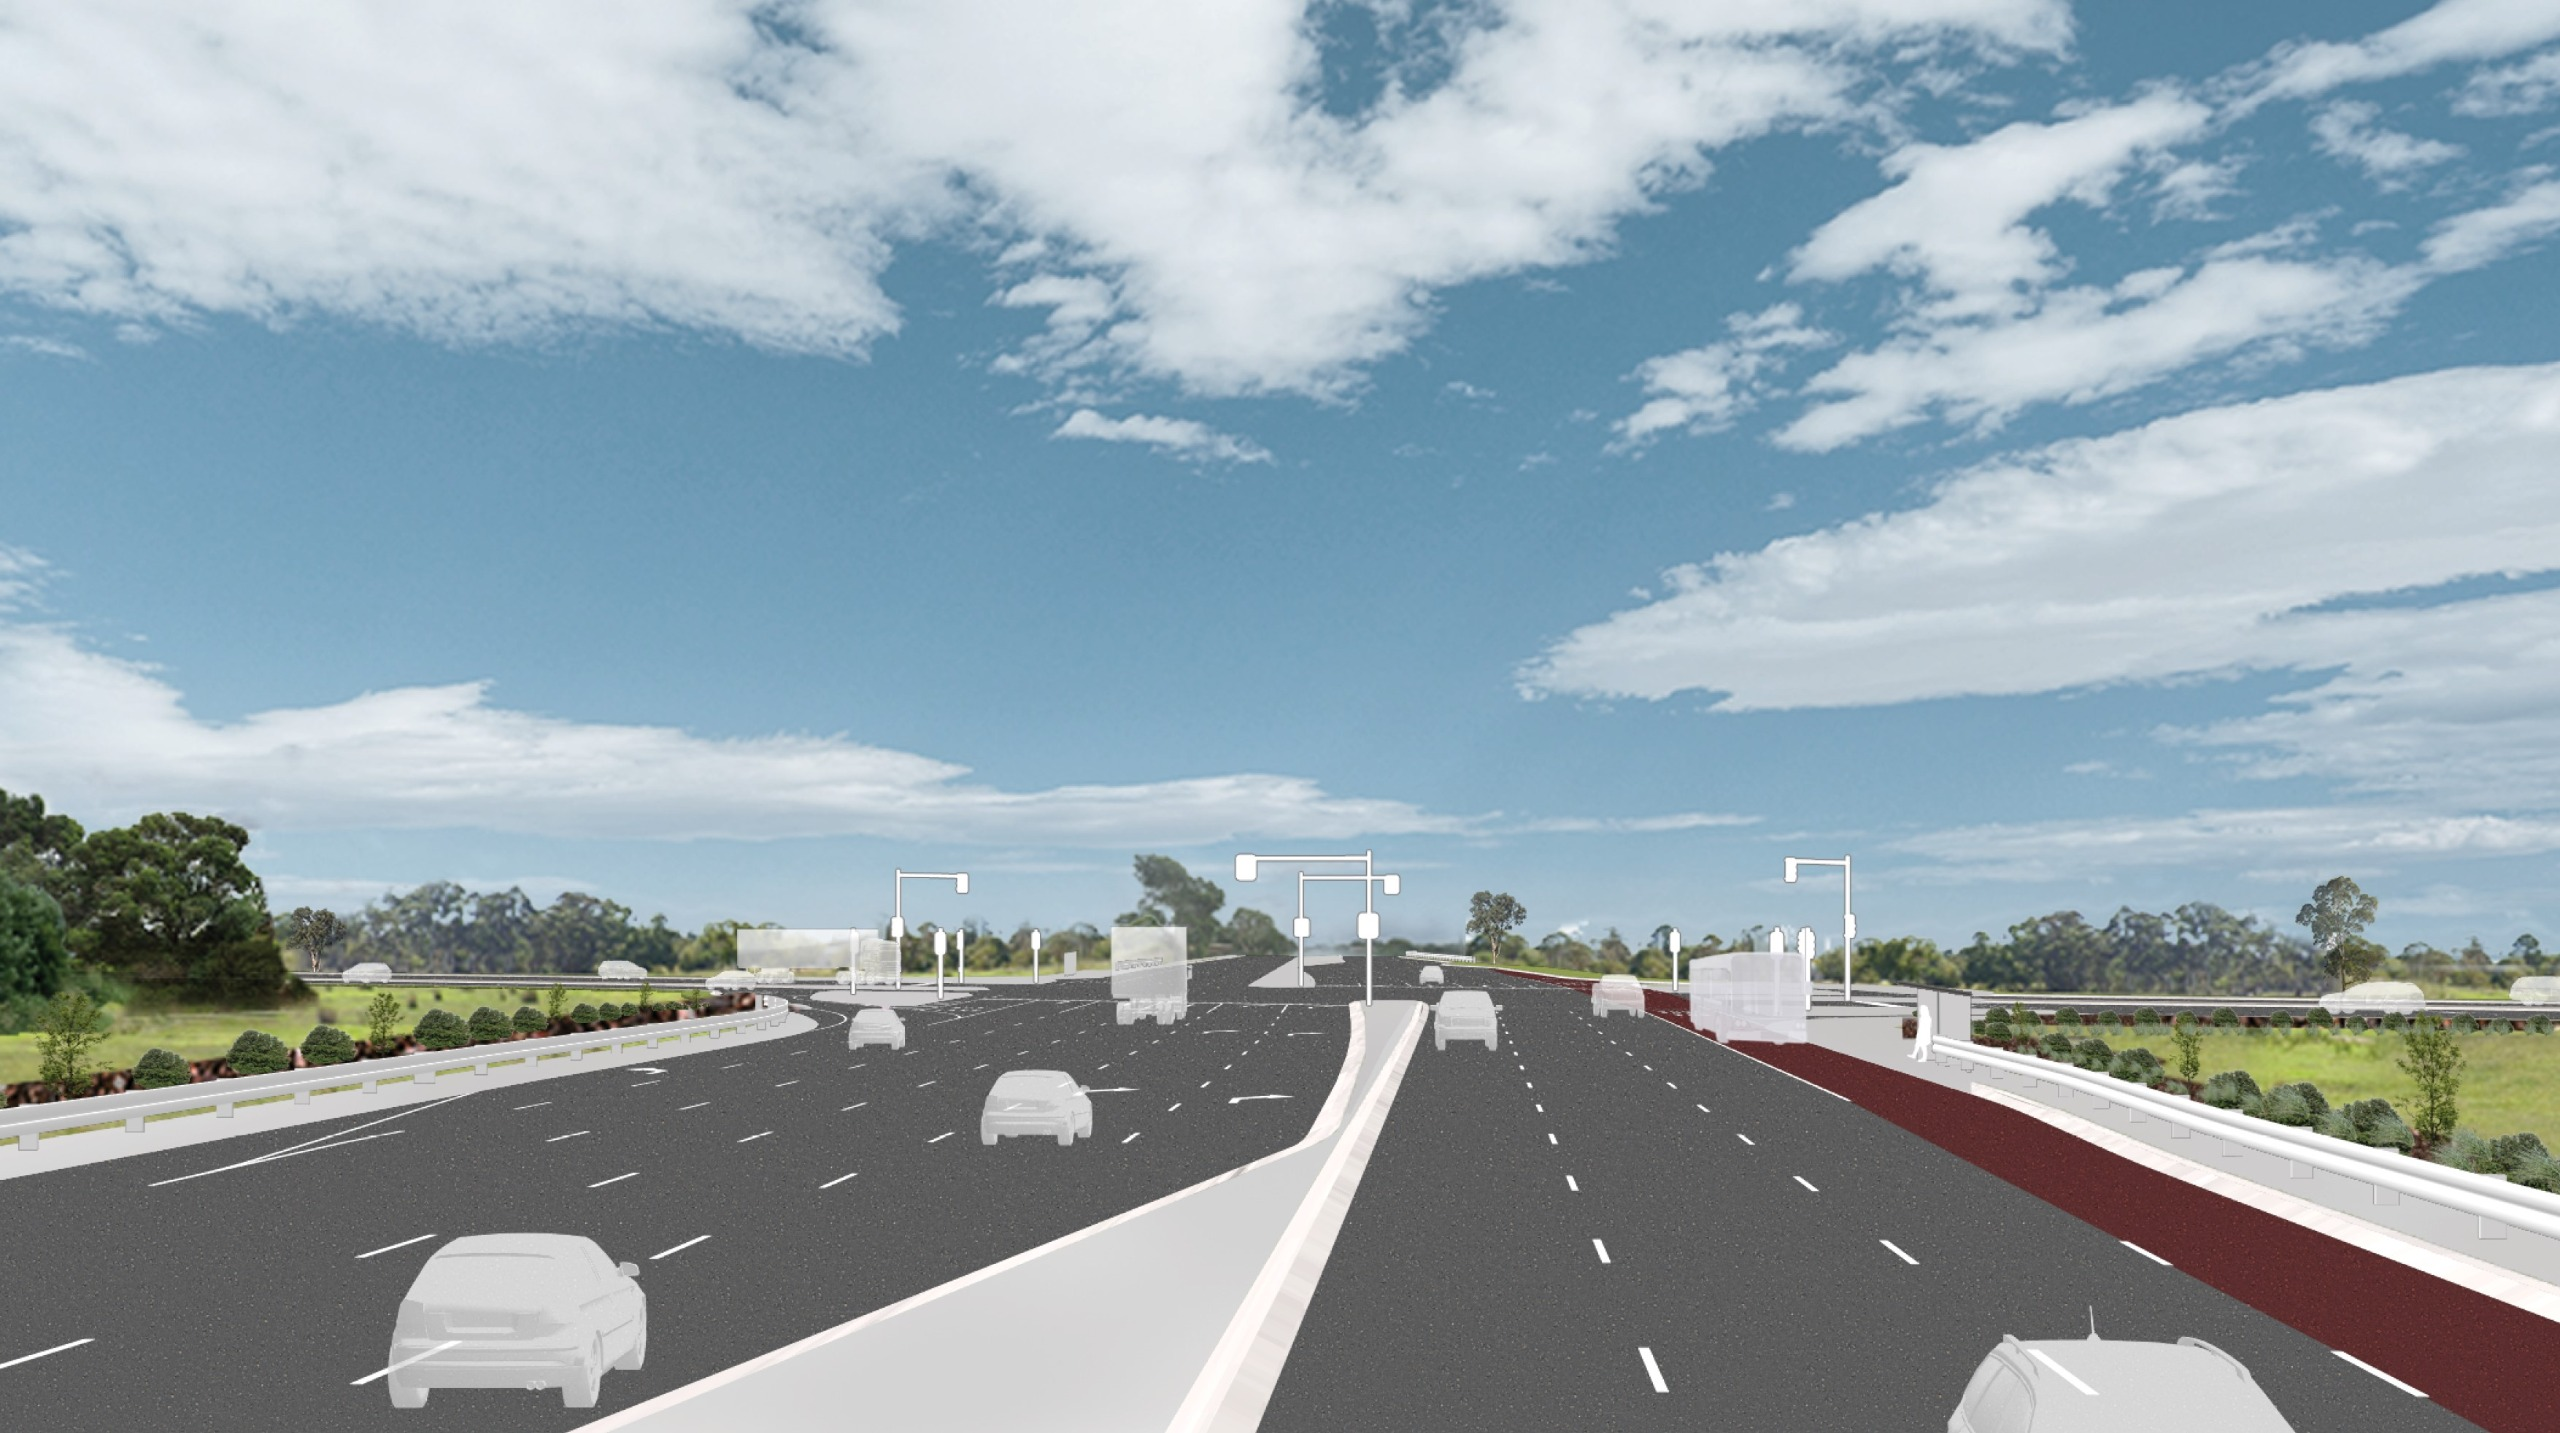 Artist's impression of cars driving through the Cranbourne-Frankston Road intersection 1 year after project completion